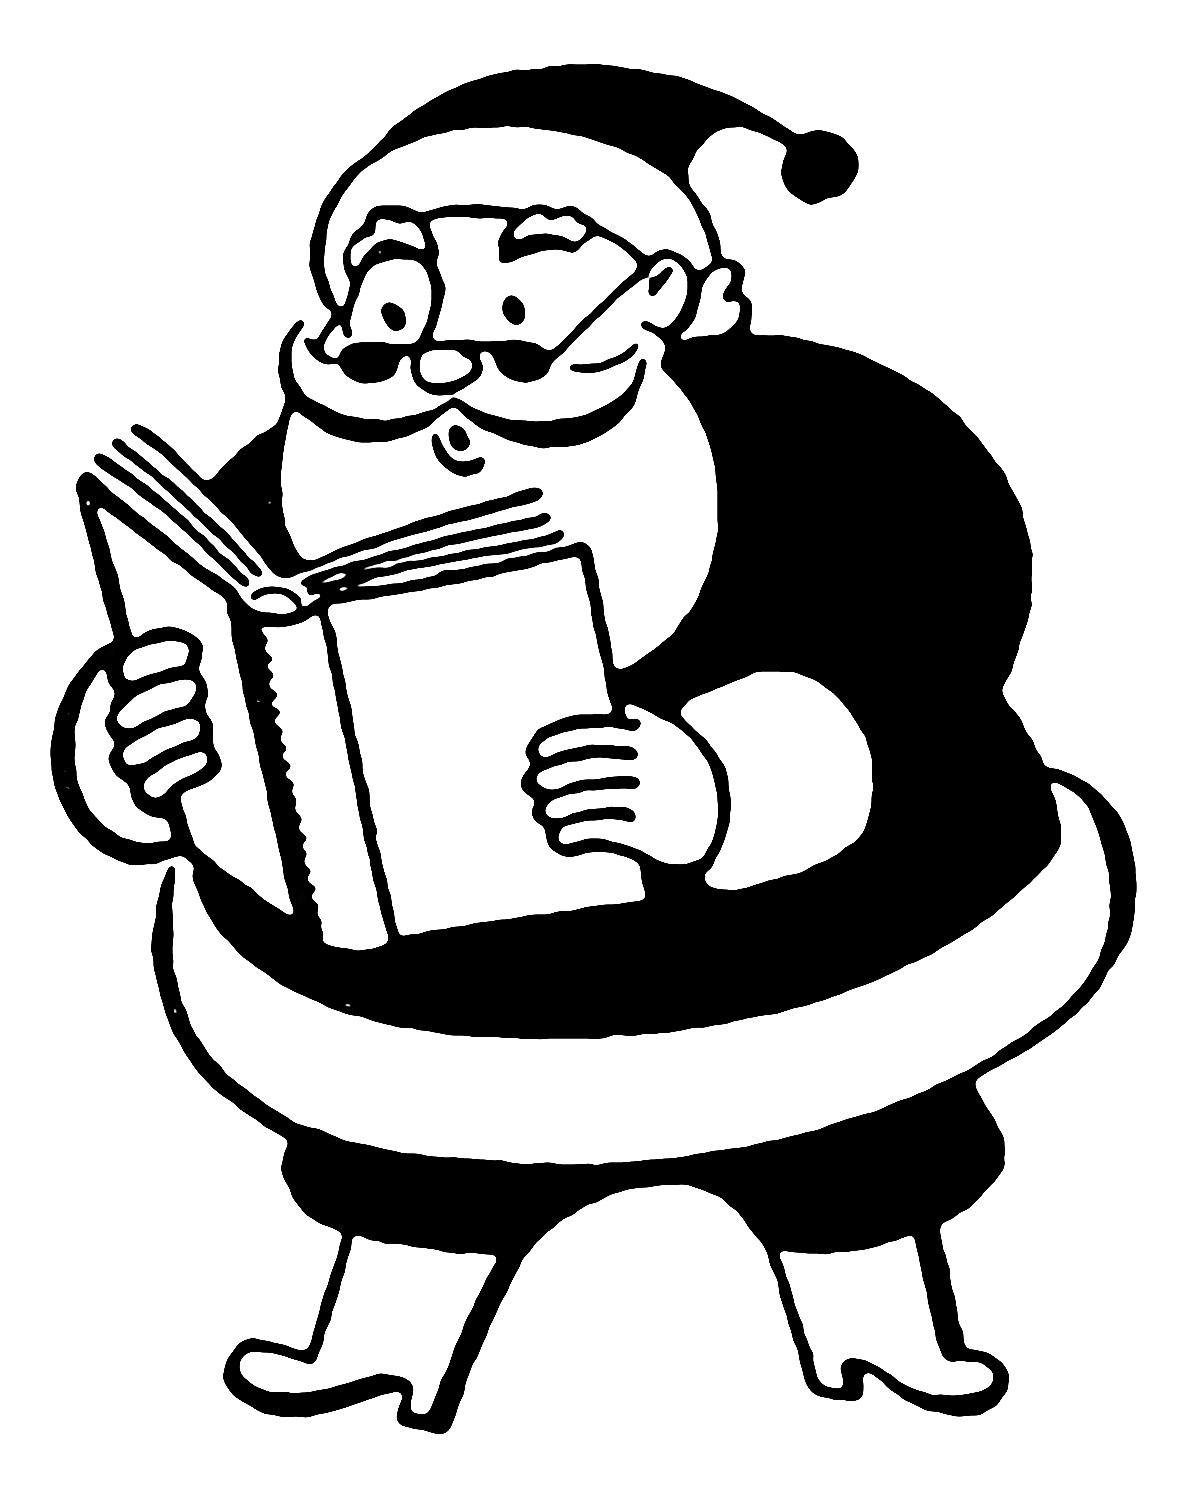 free black and white santa clipart - photo #46